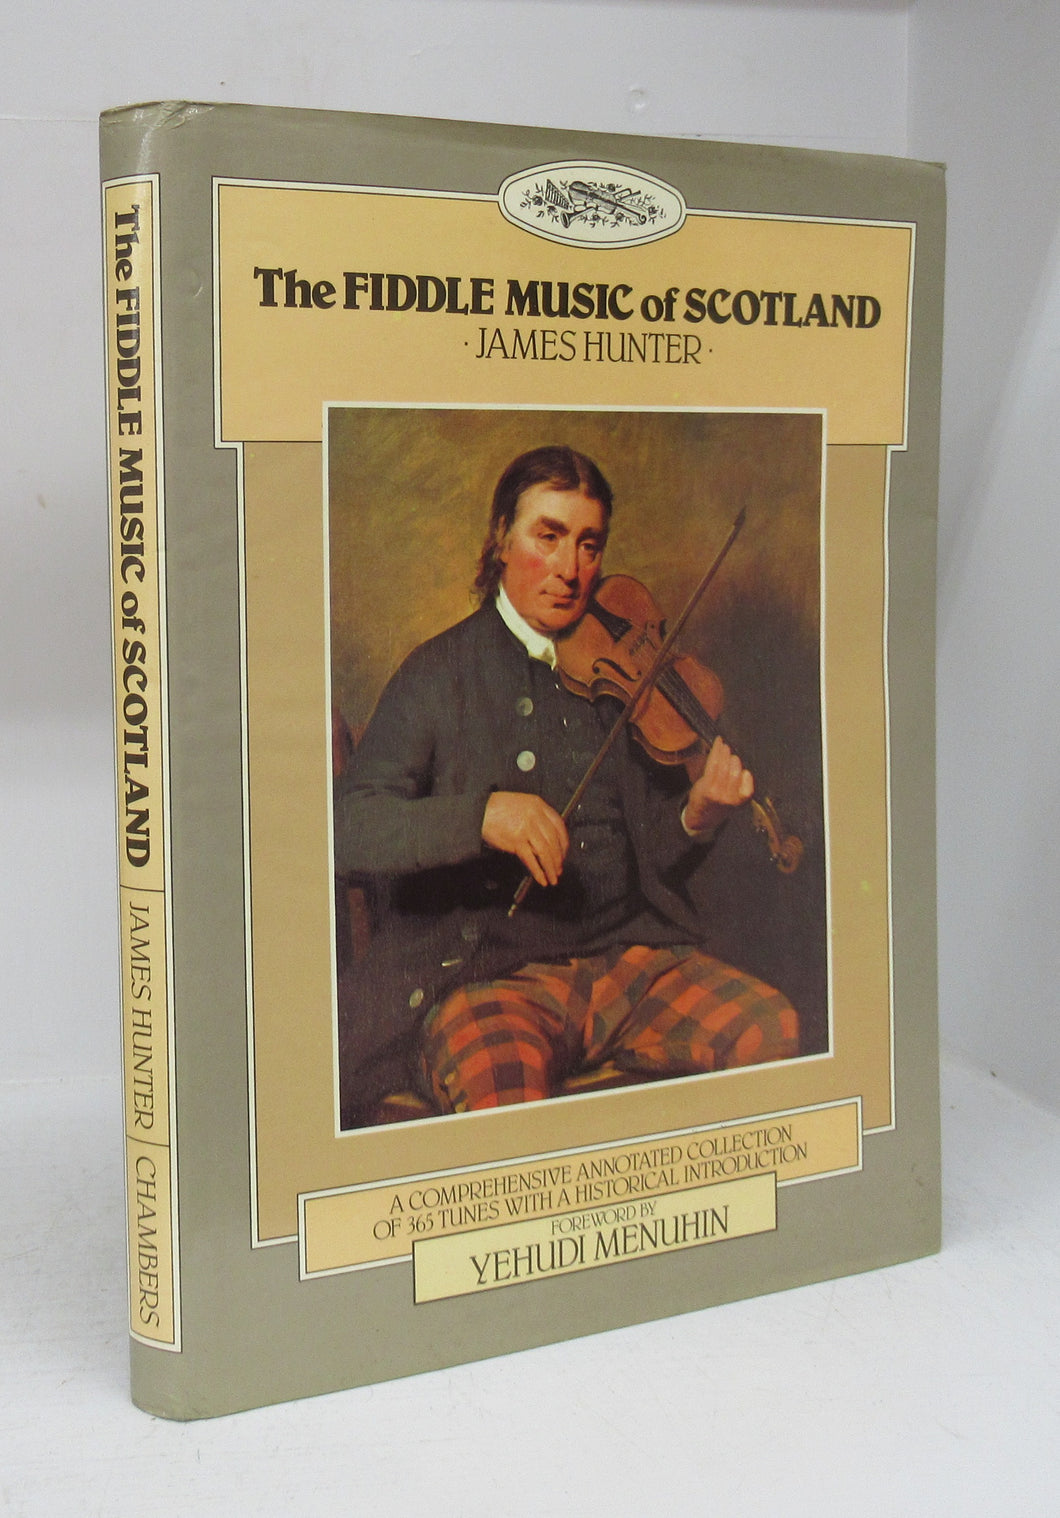 The Fiddle Music of Scotland: A Comprehensive Annotated Collection of 365 Tunes with a Historical Introduction